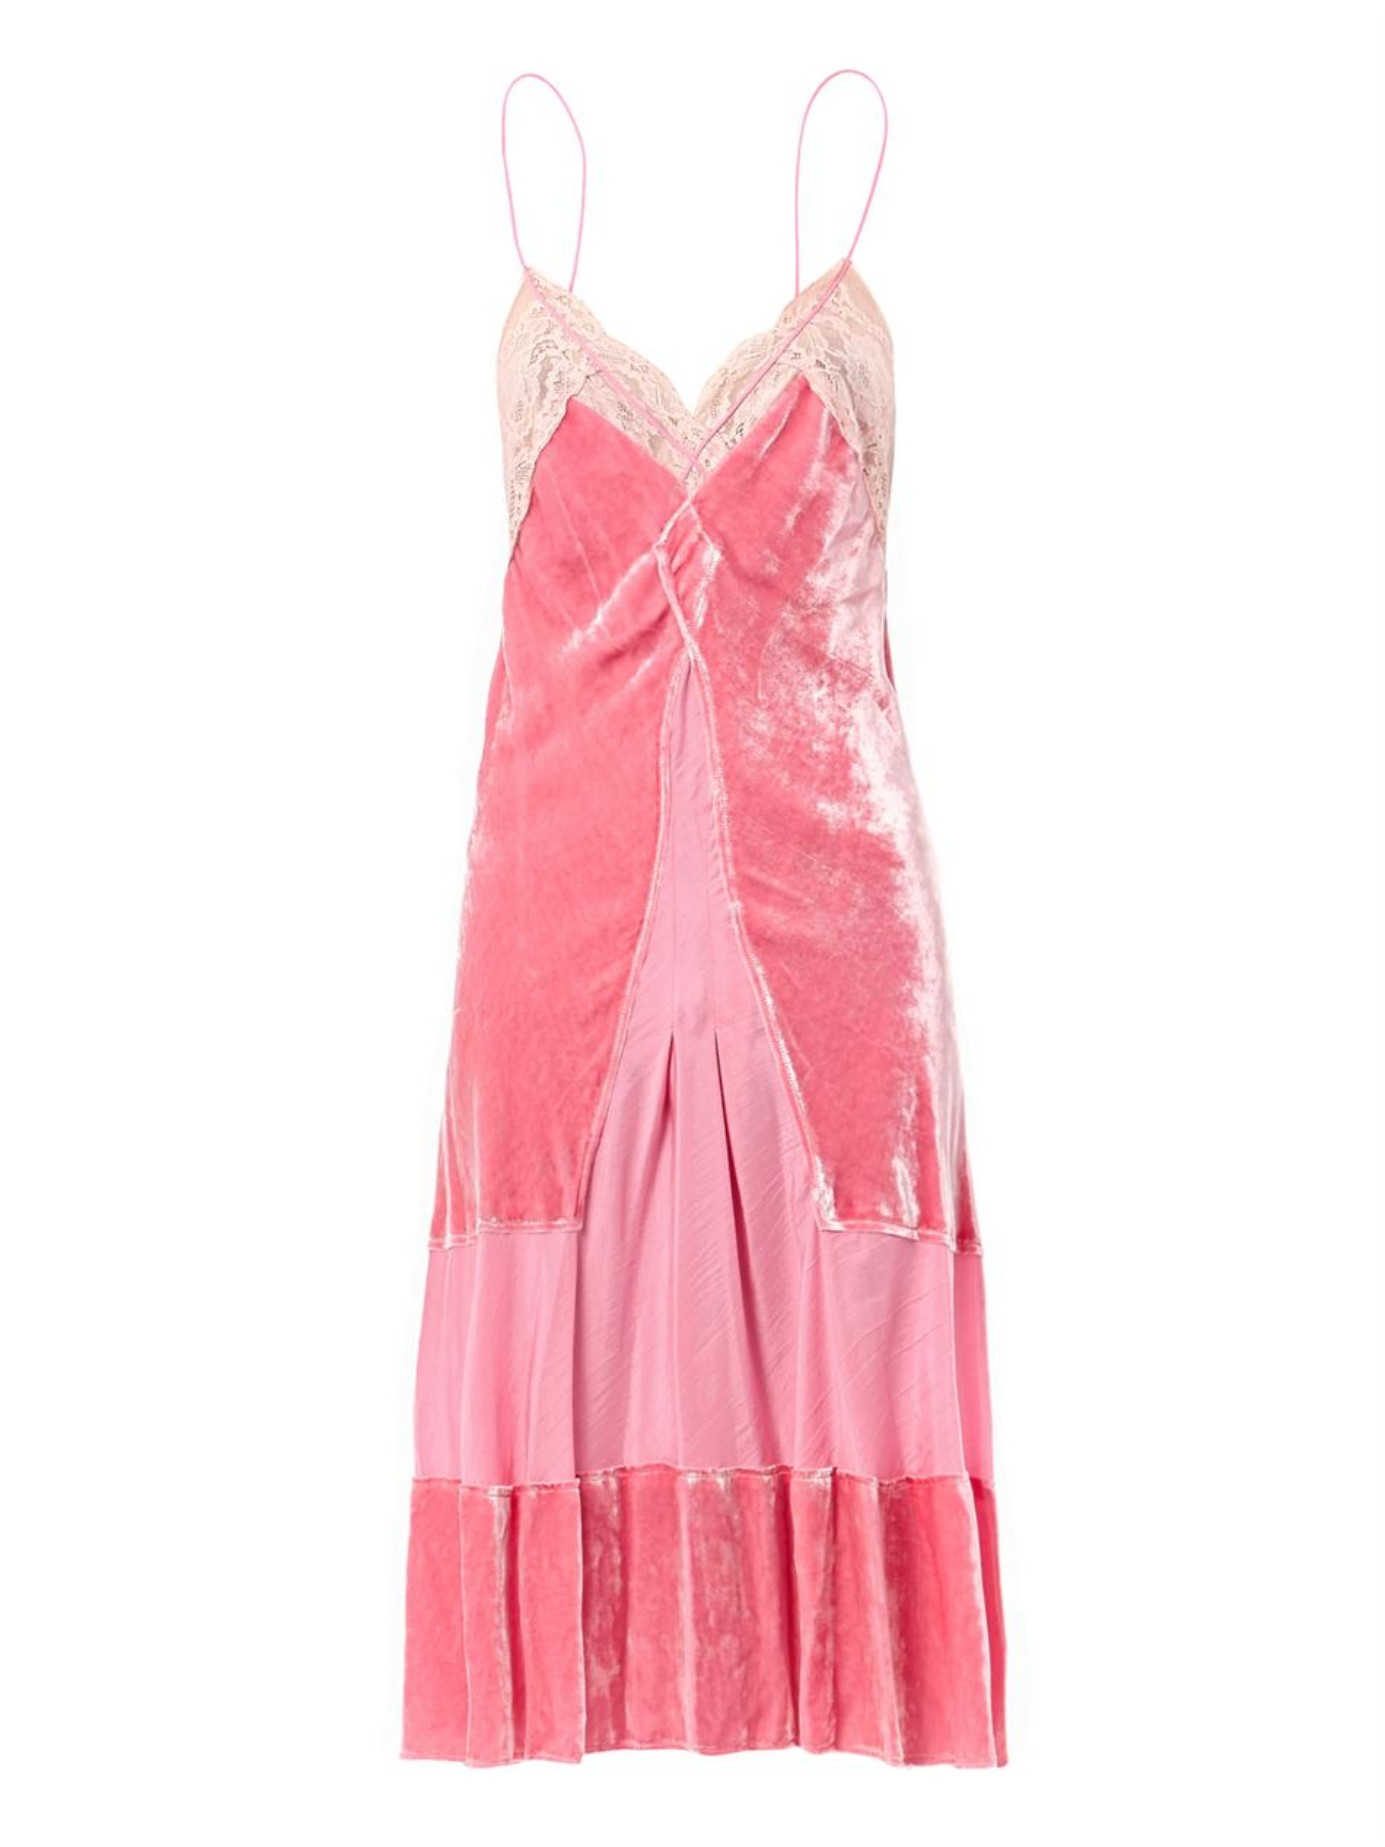 Nina Ricci Velvet And Lace Slip Dress In Pink Lyst